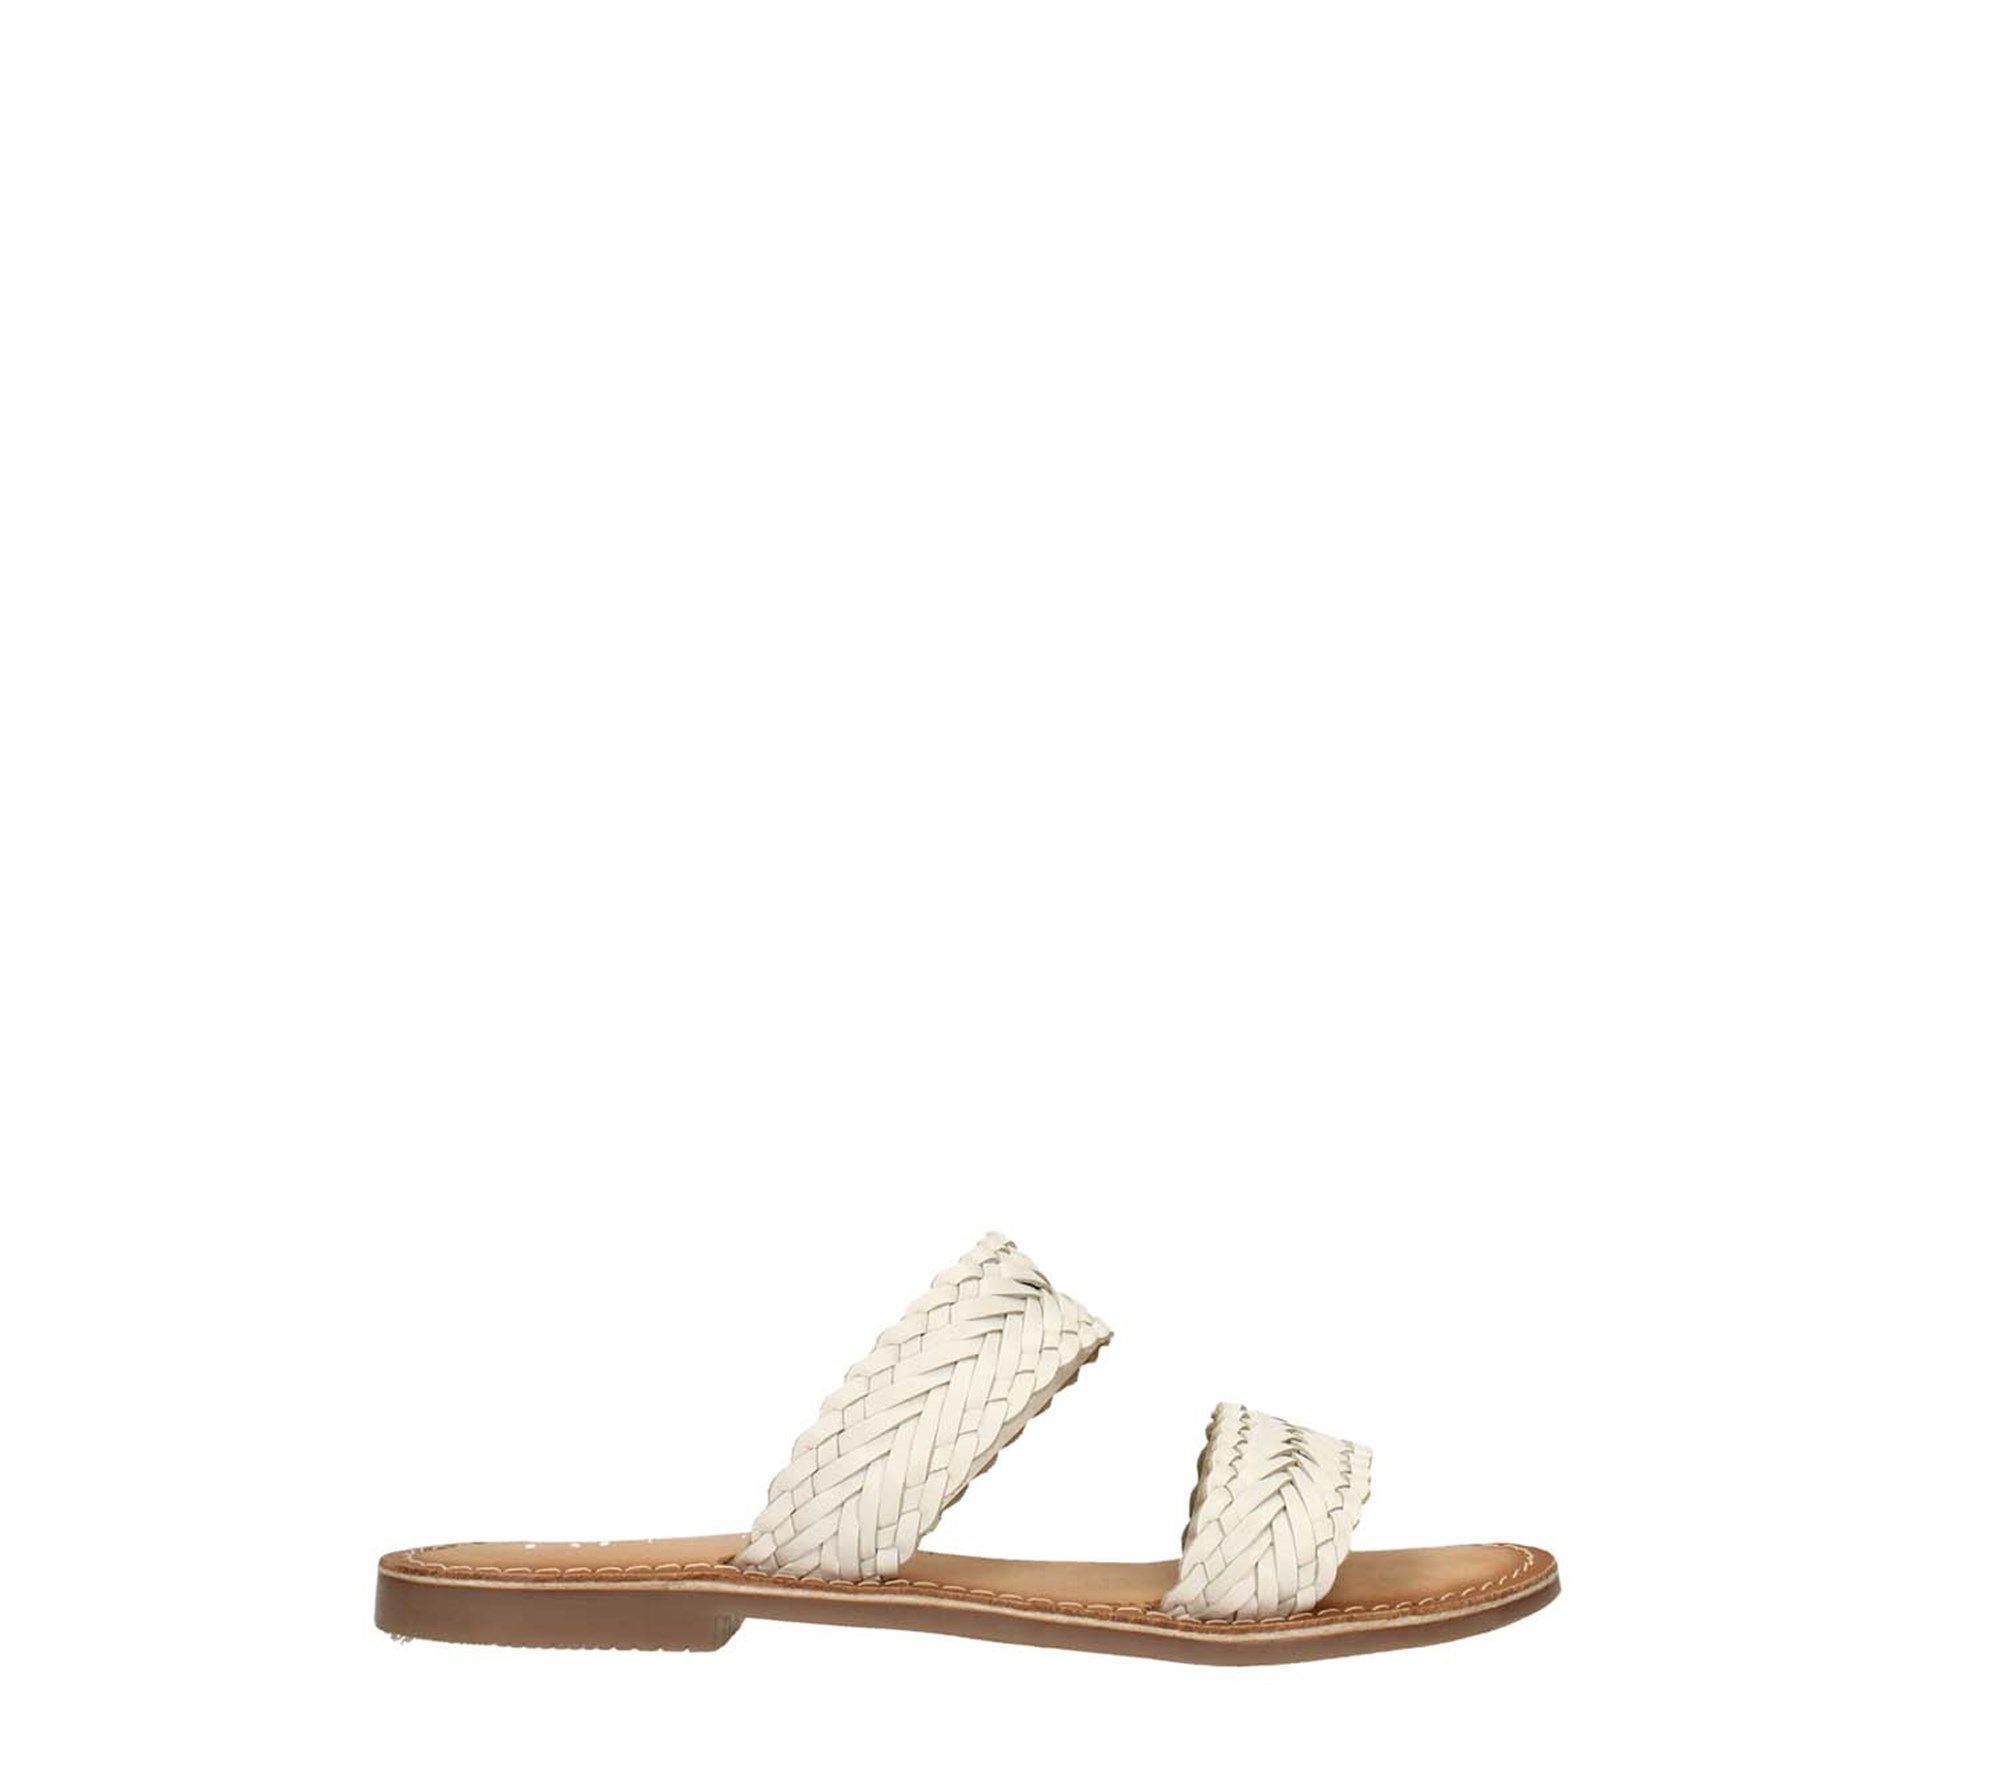 Tata Italia Shoes Woman Sandali IA-2019-1141